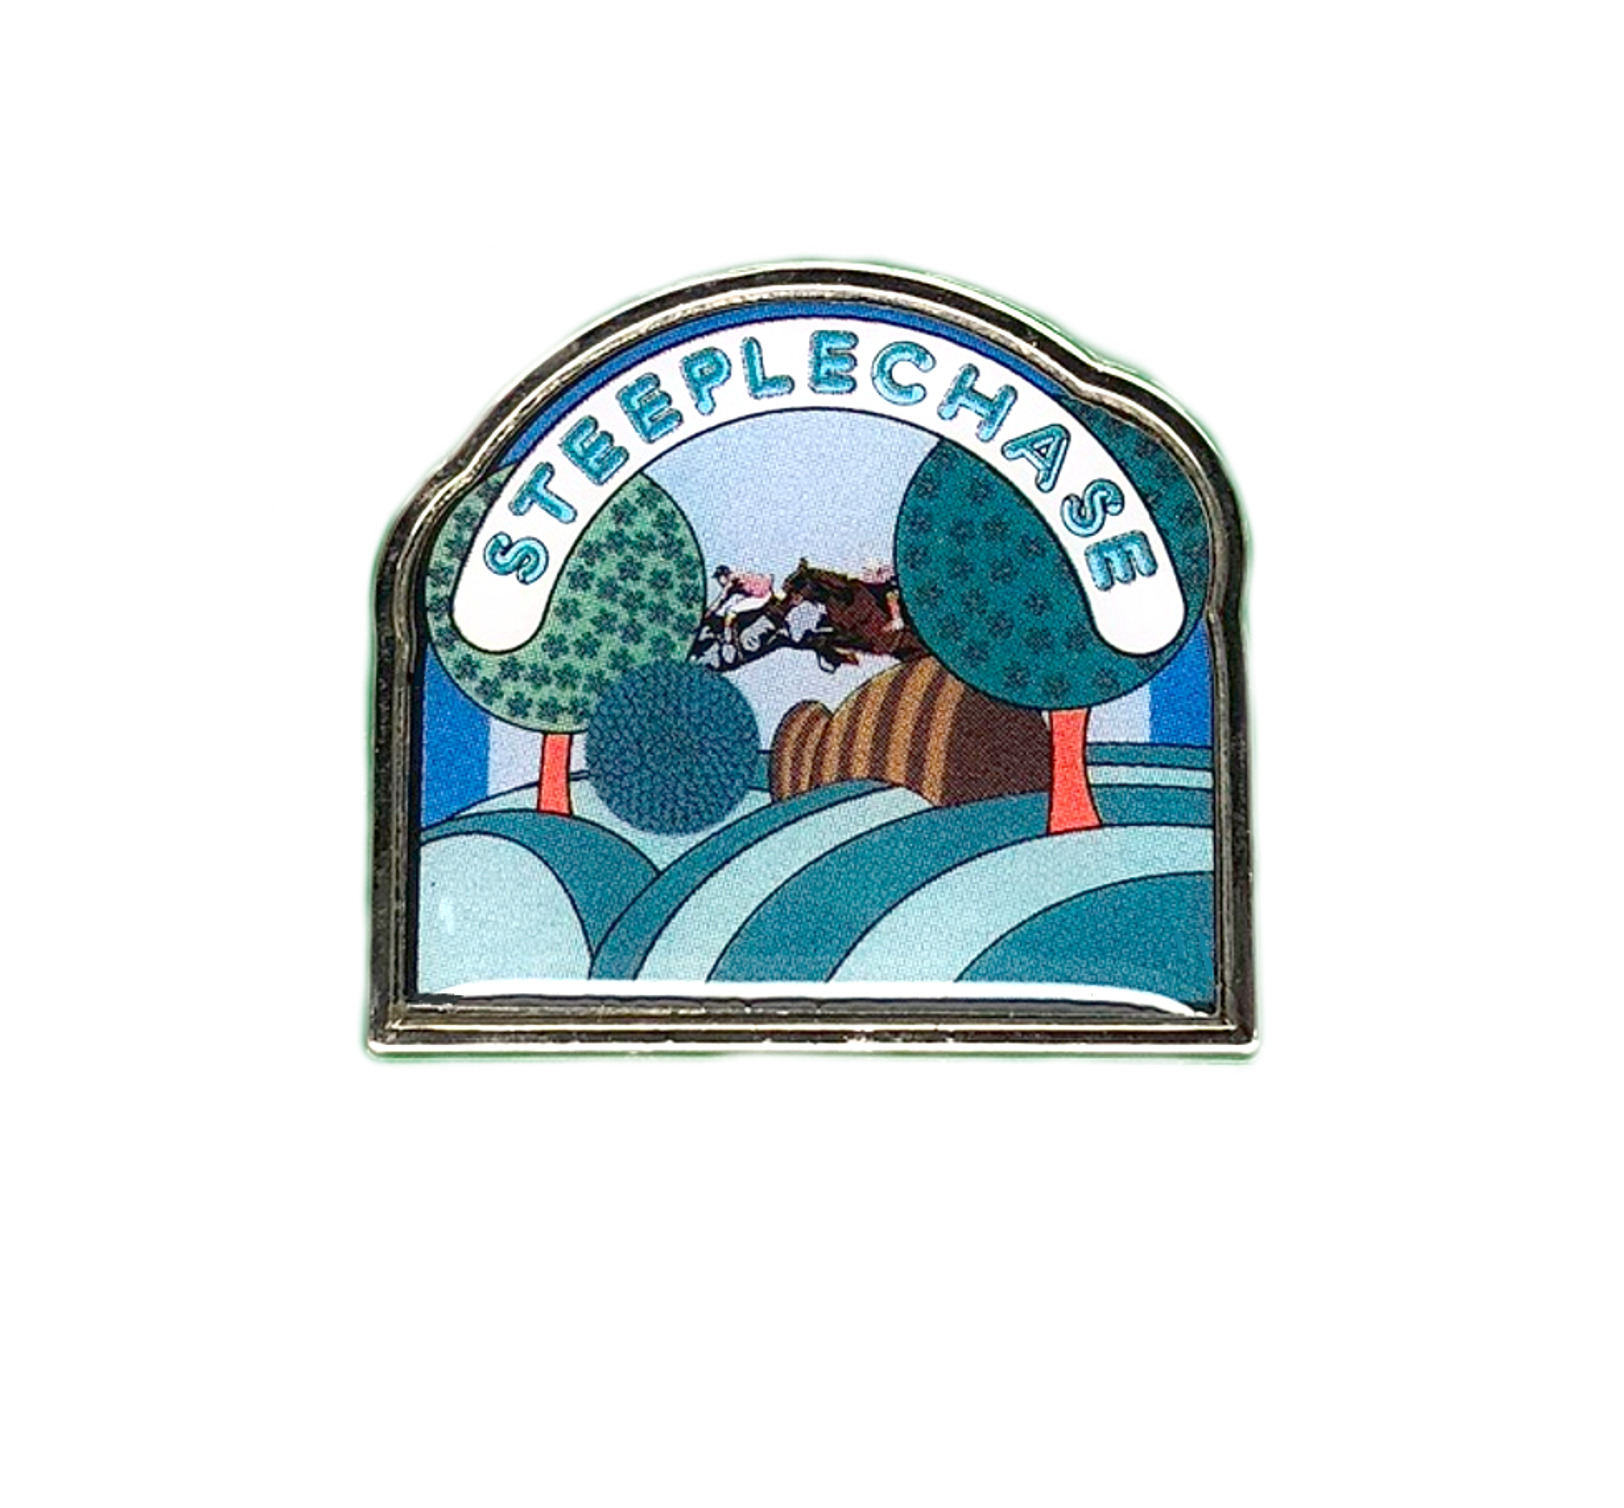 Steeplechase Pin Badge2